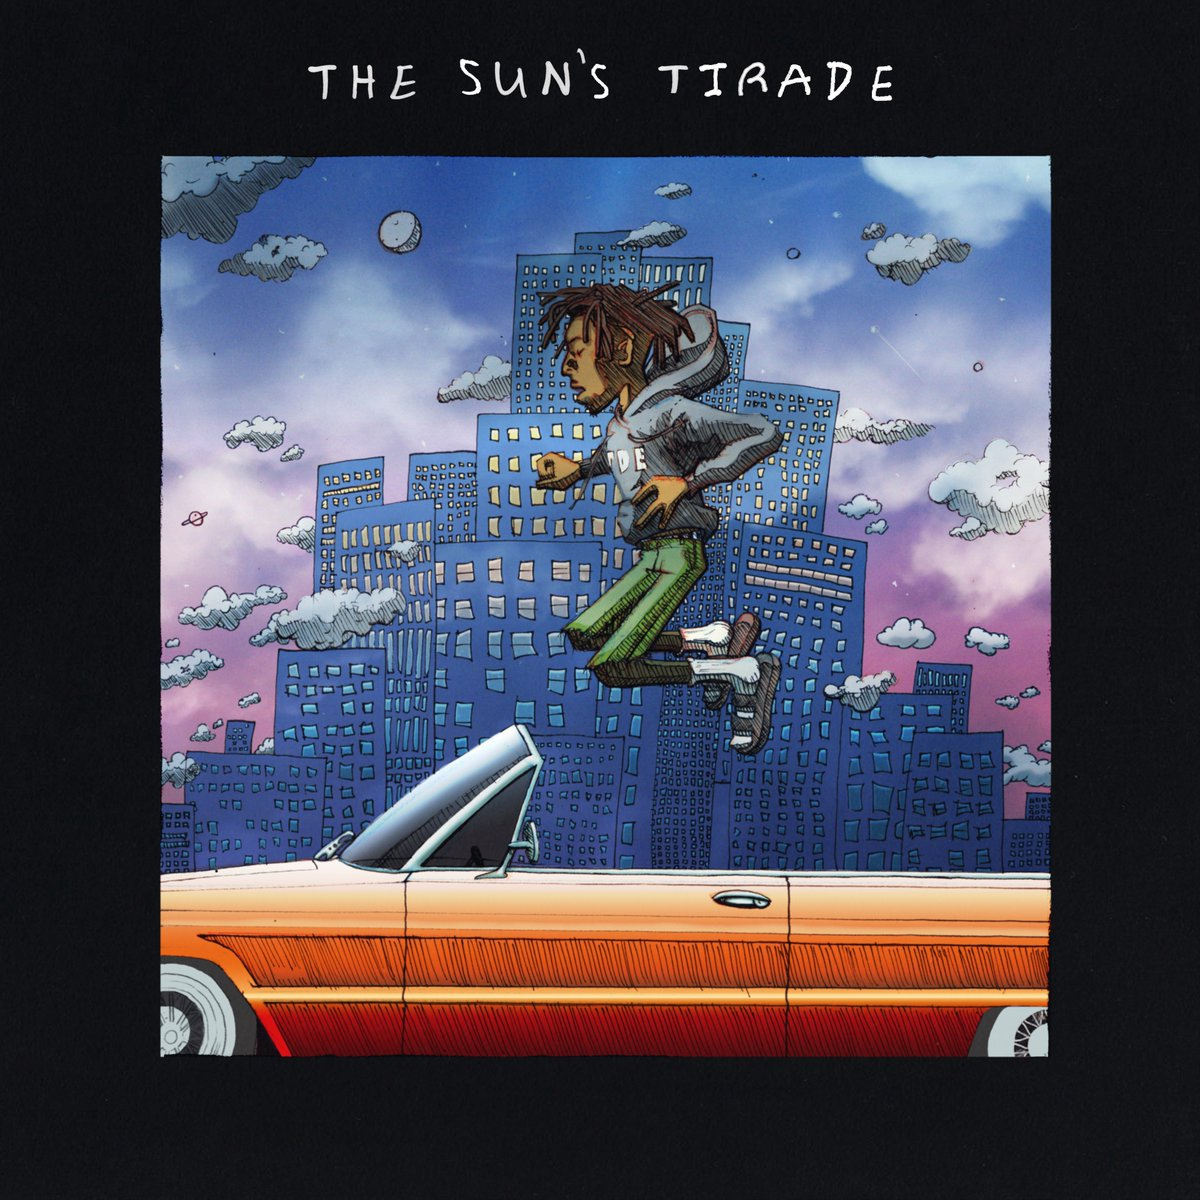 brought to you by @TopDawgEnt #TheSunsTirade by @isaiahrashad AVAILABLE 09.02.16 #TDE https://t.co/0h7QLOlZMO